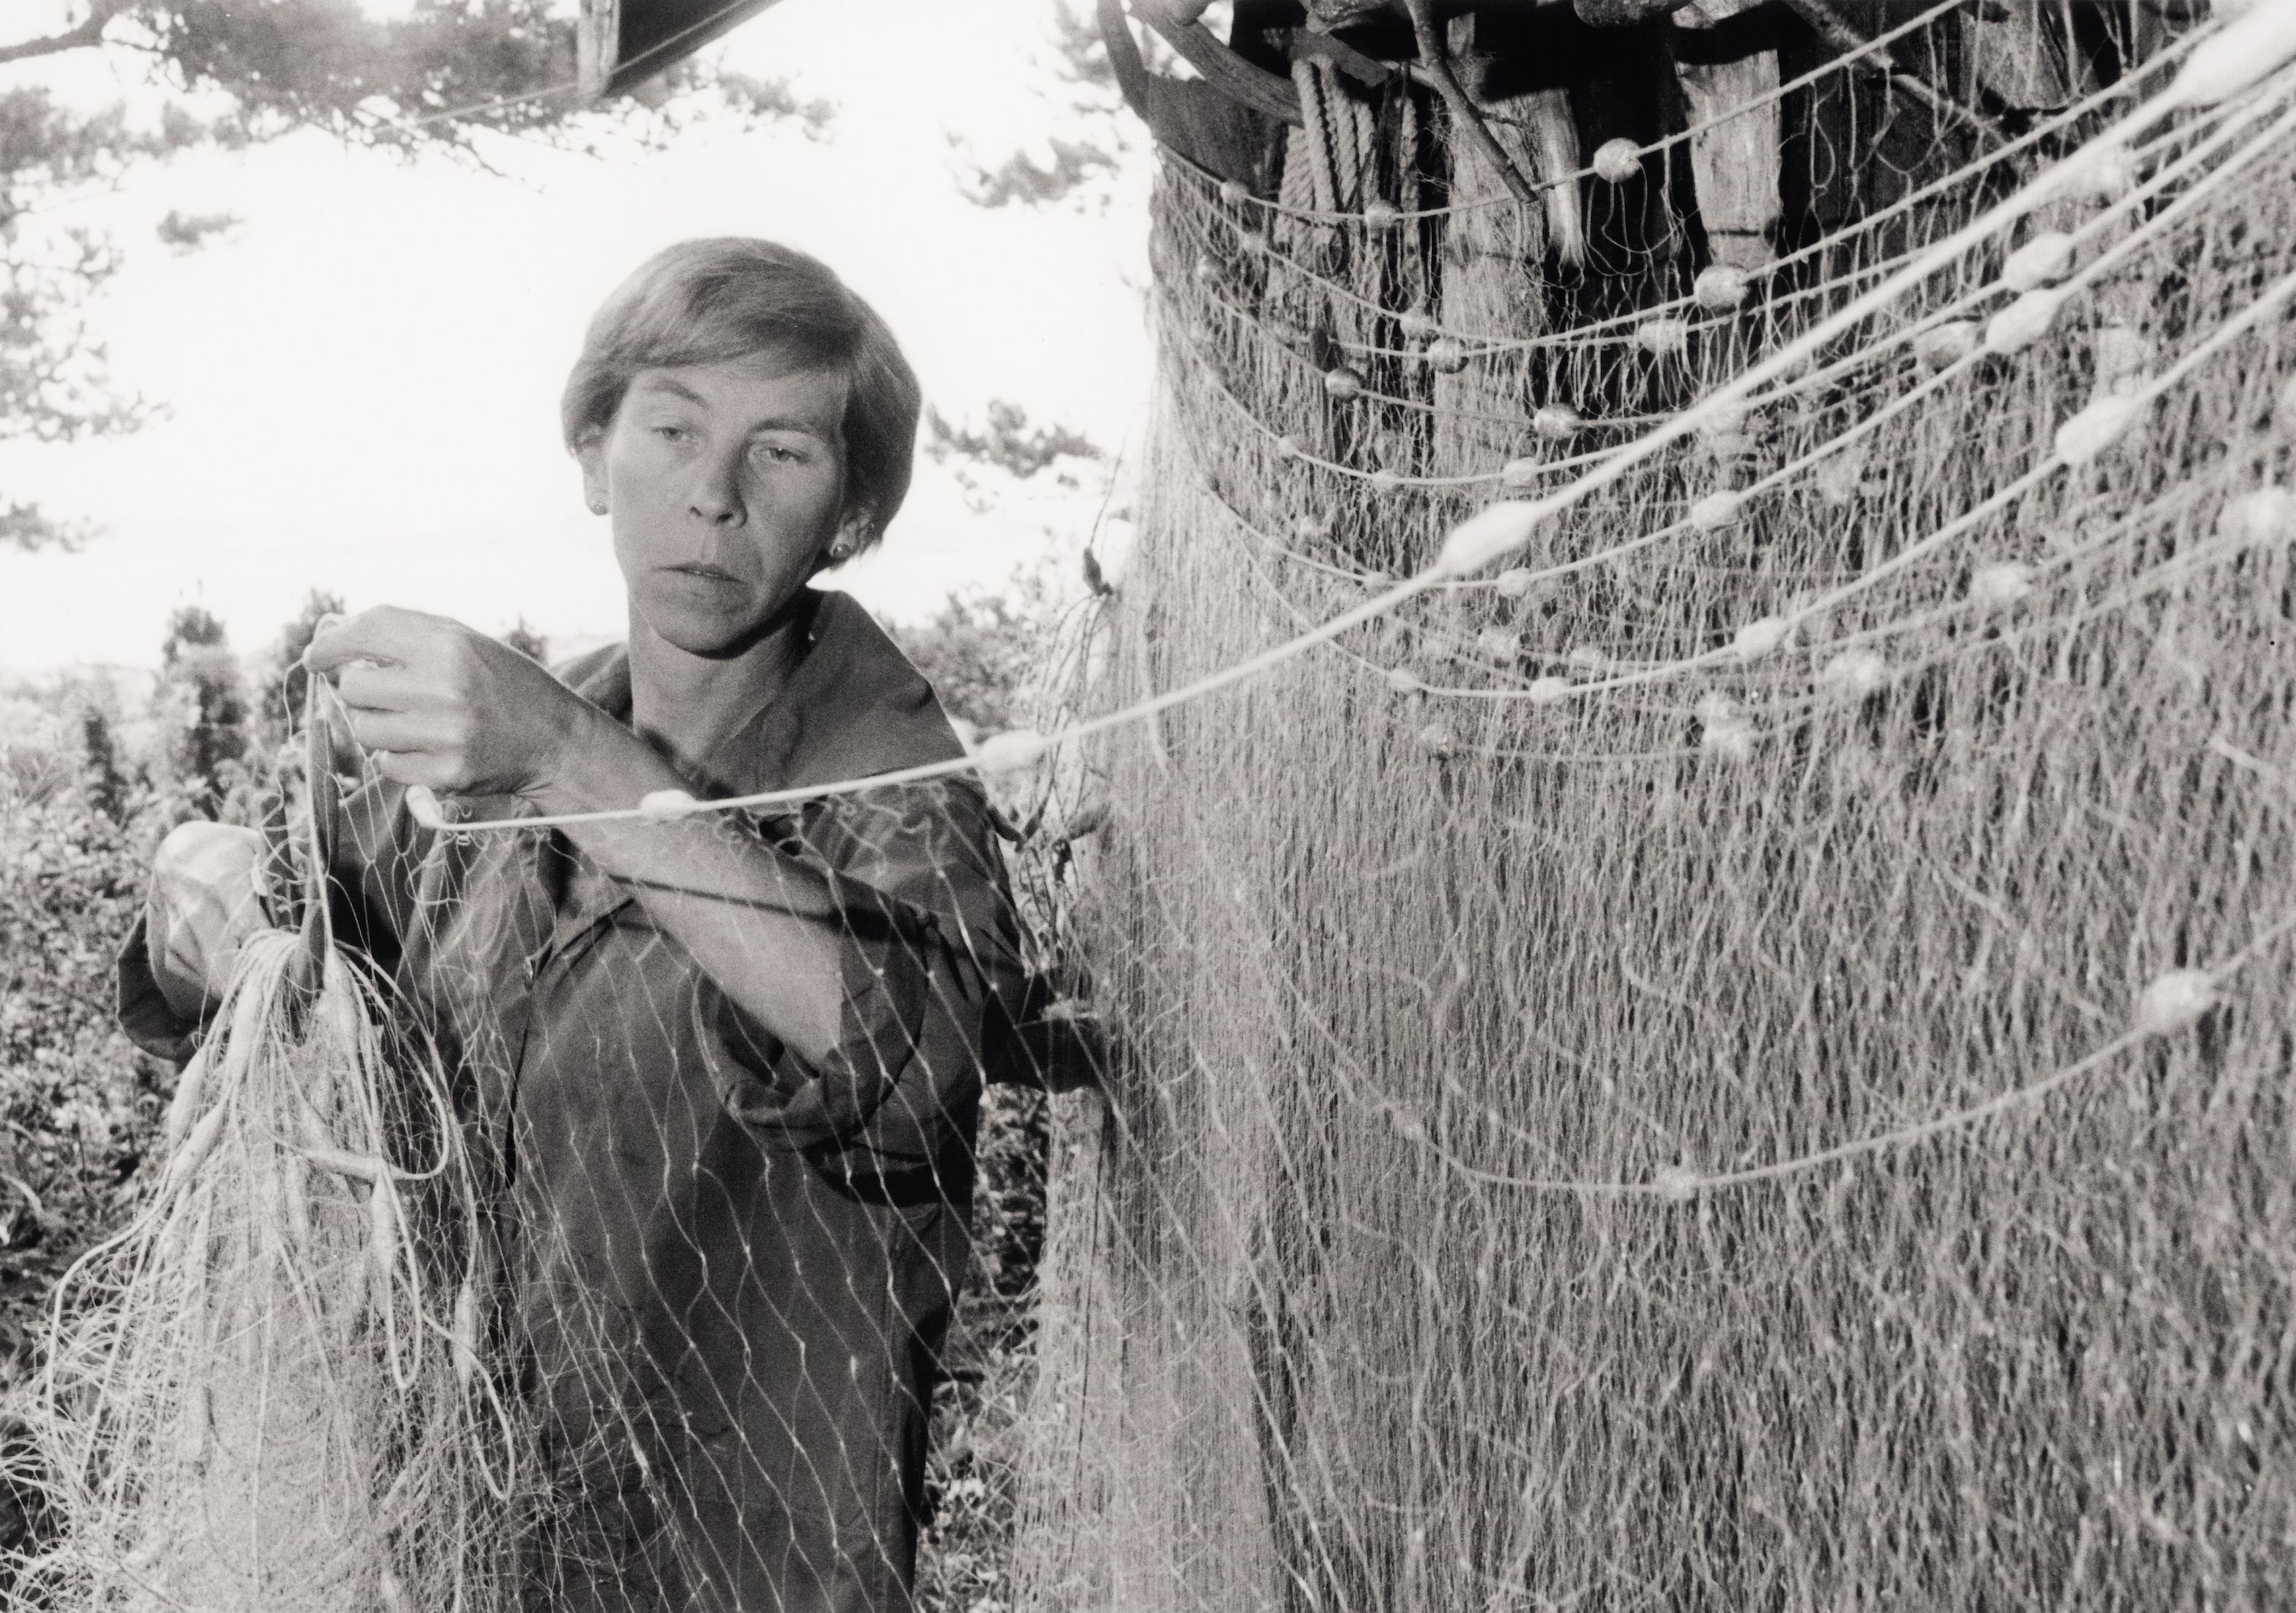 Tove Jansson by the Baltic Sea © Per Olov Jansson